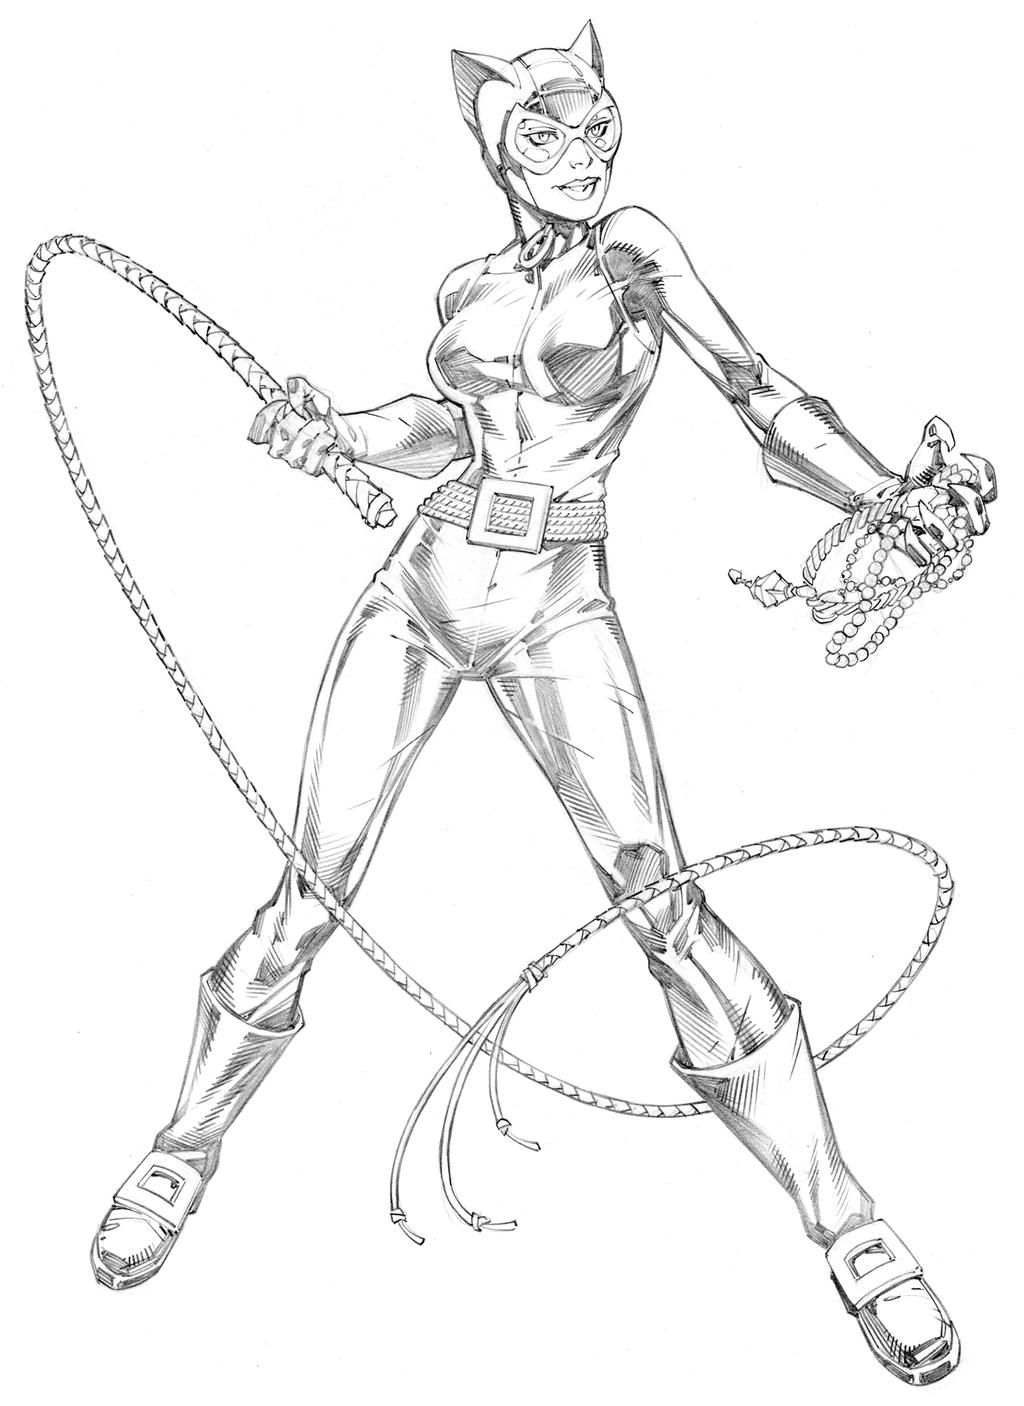 Catwoman By Randygreen On Deviantart In 2020 Batman Coloring Pages Superhero Coloring Pages Coloring Pages